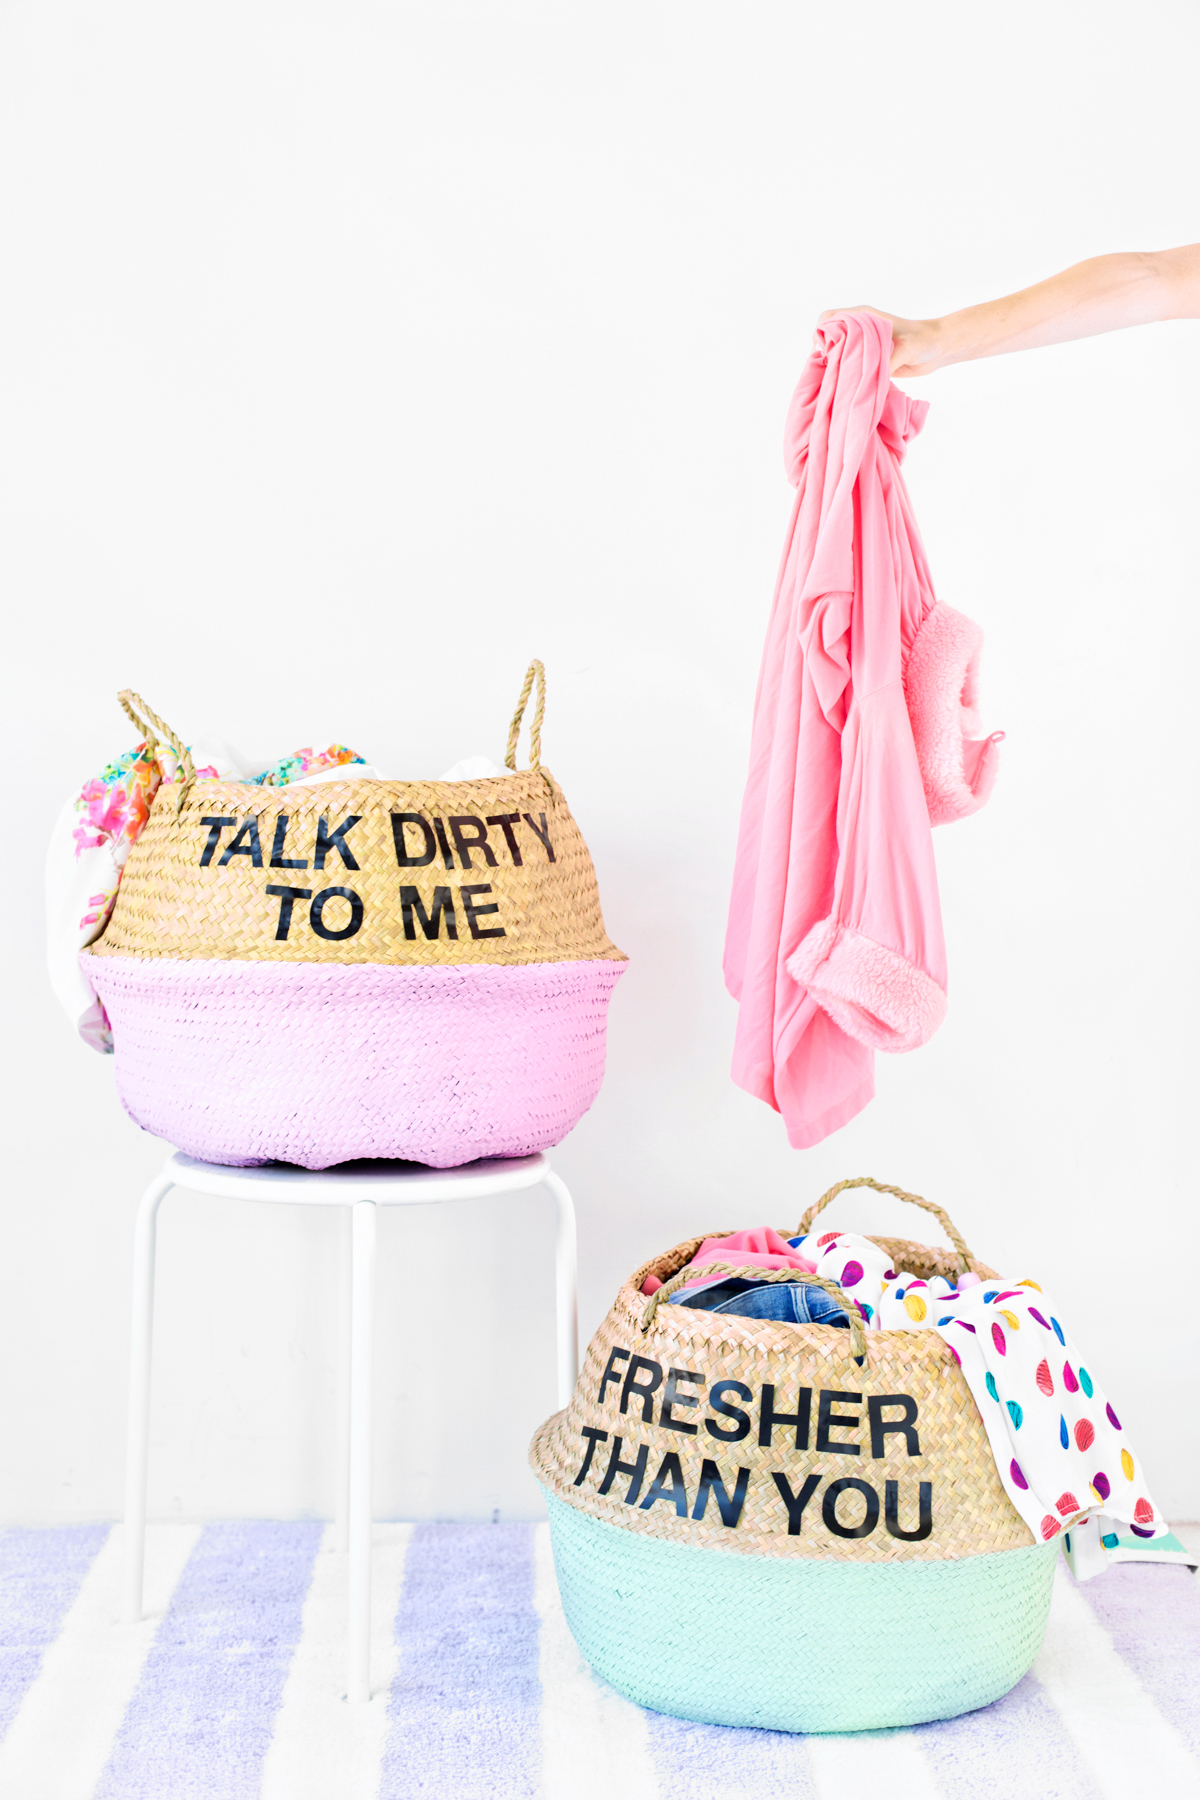 Dirty Laundry Baskets Diy Graphic Laundry Baskets Studio Diy